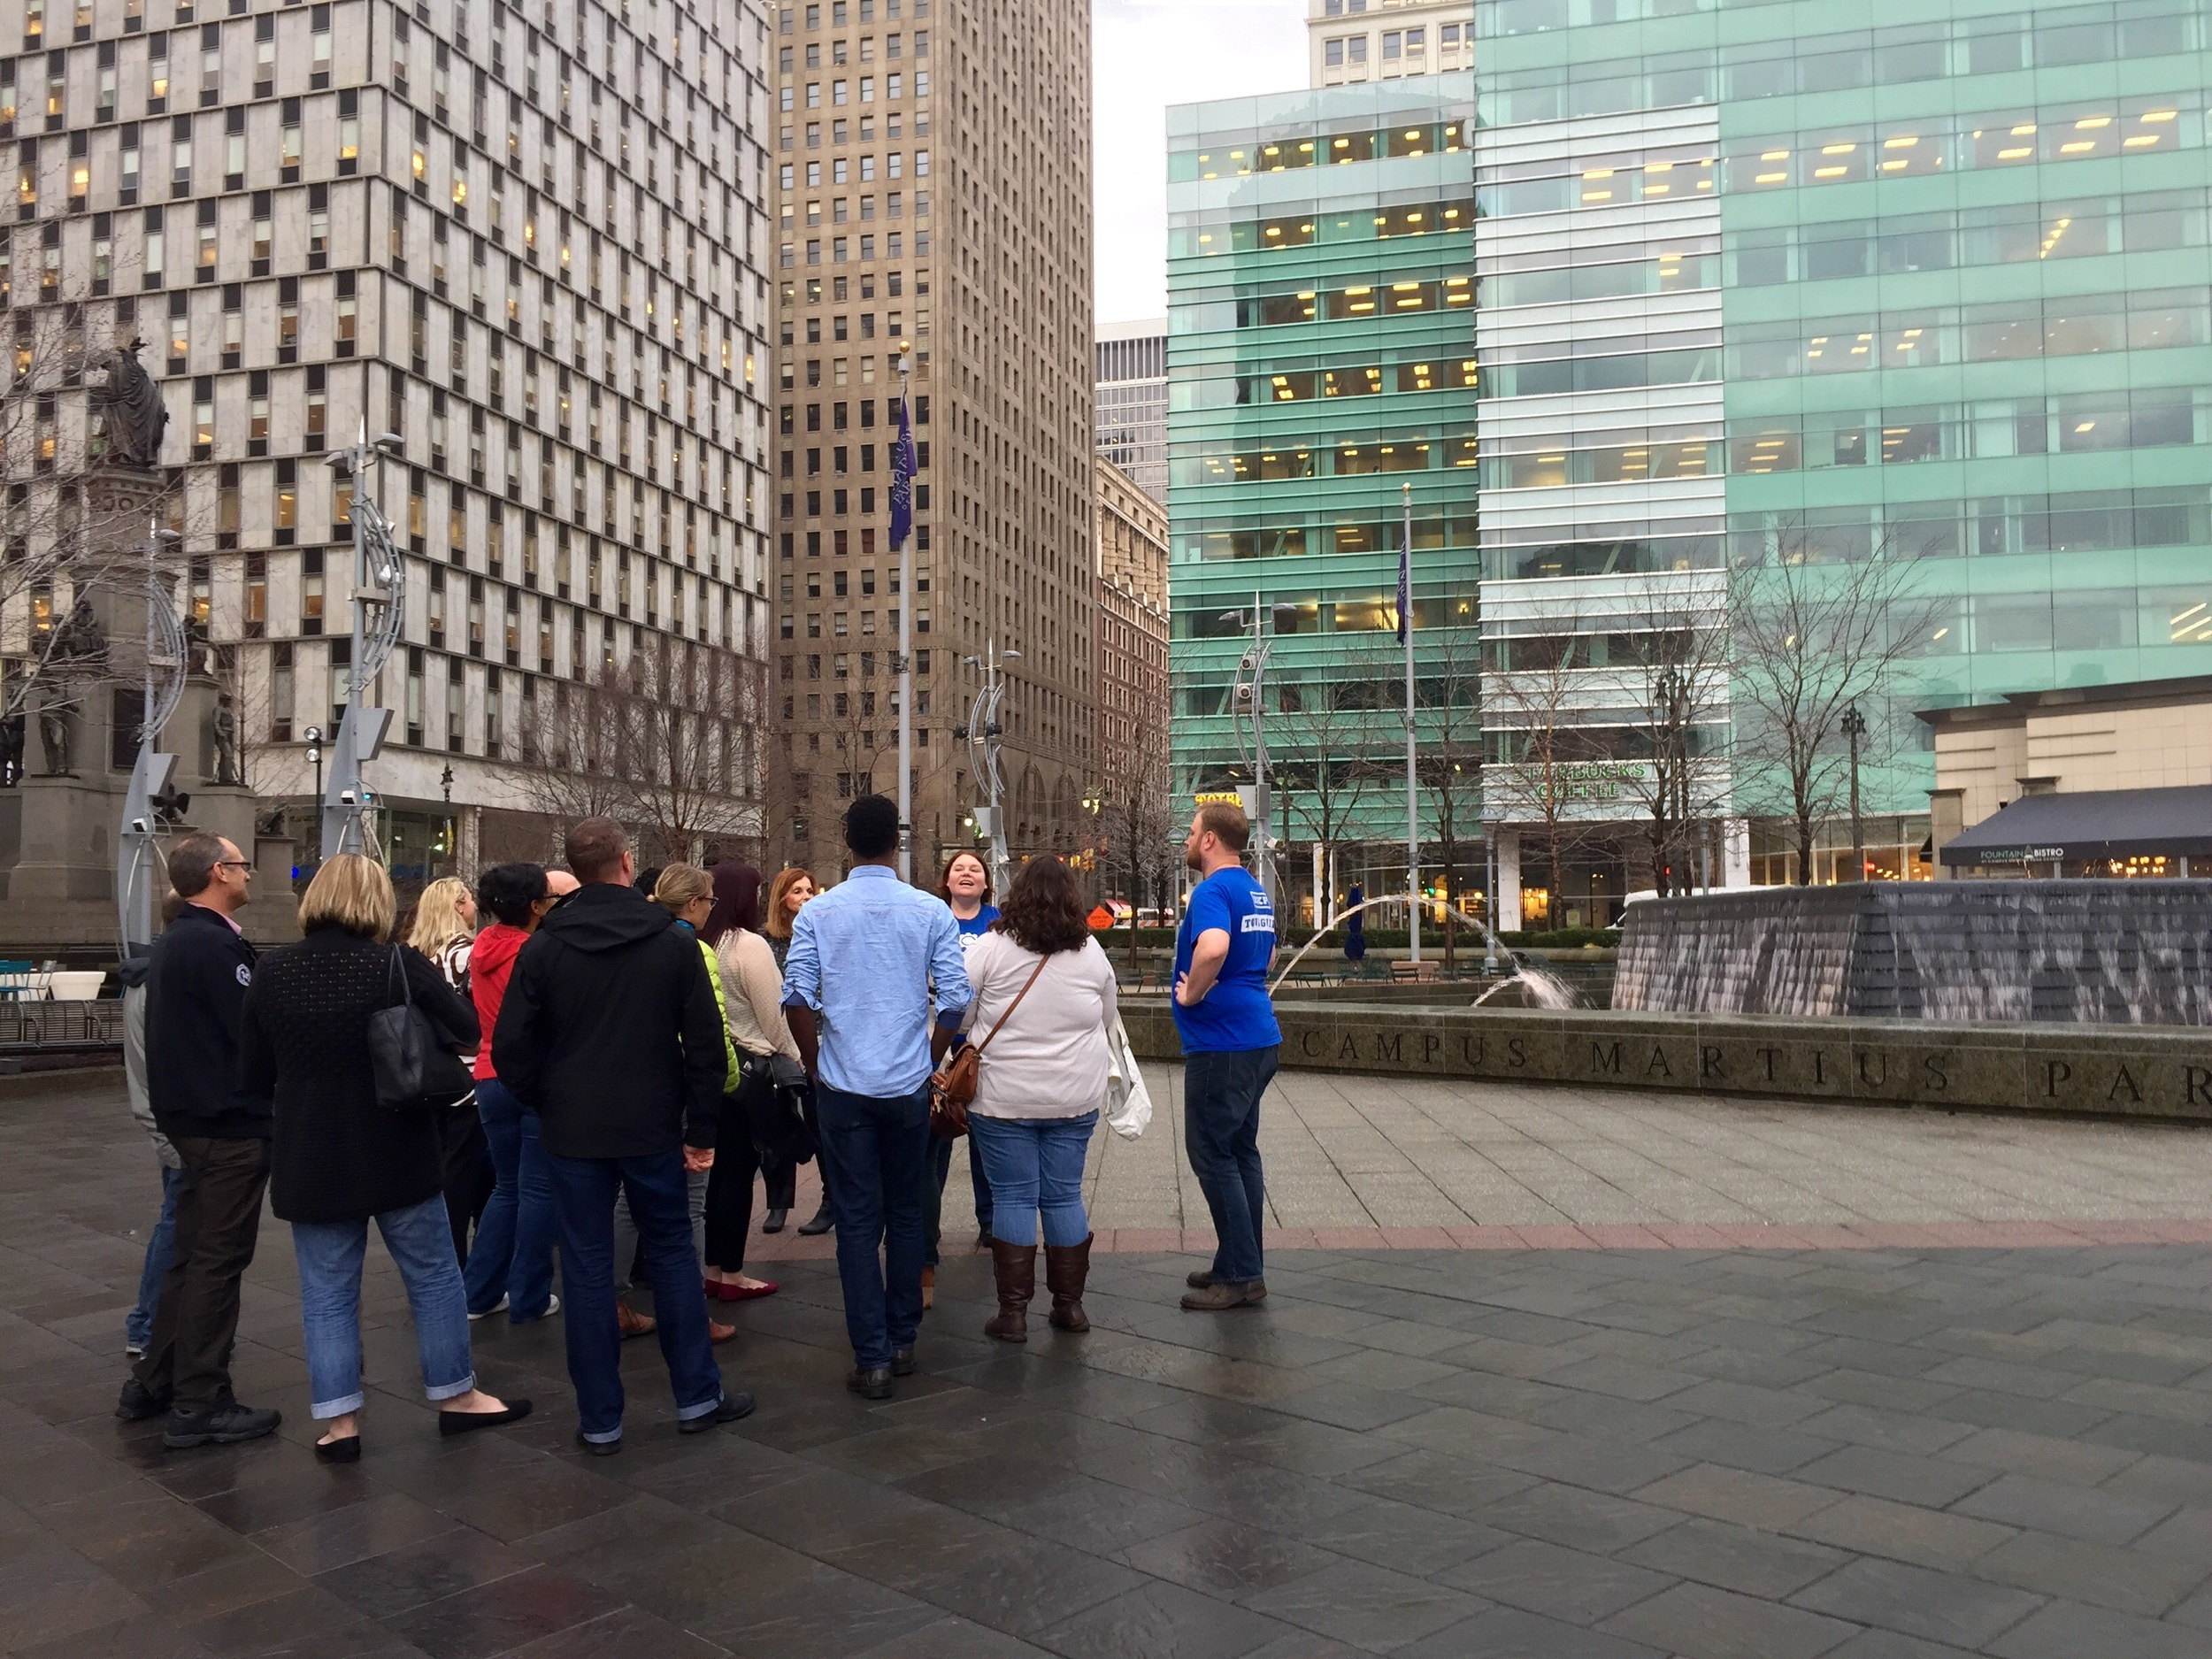 Checking out  Campus  Martius  Park  between stops.